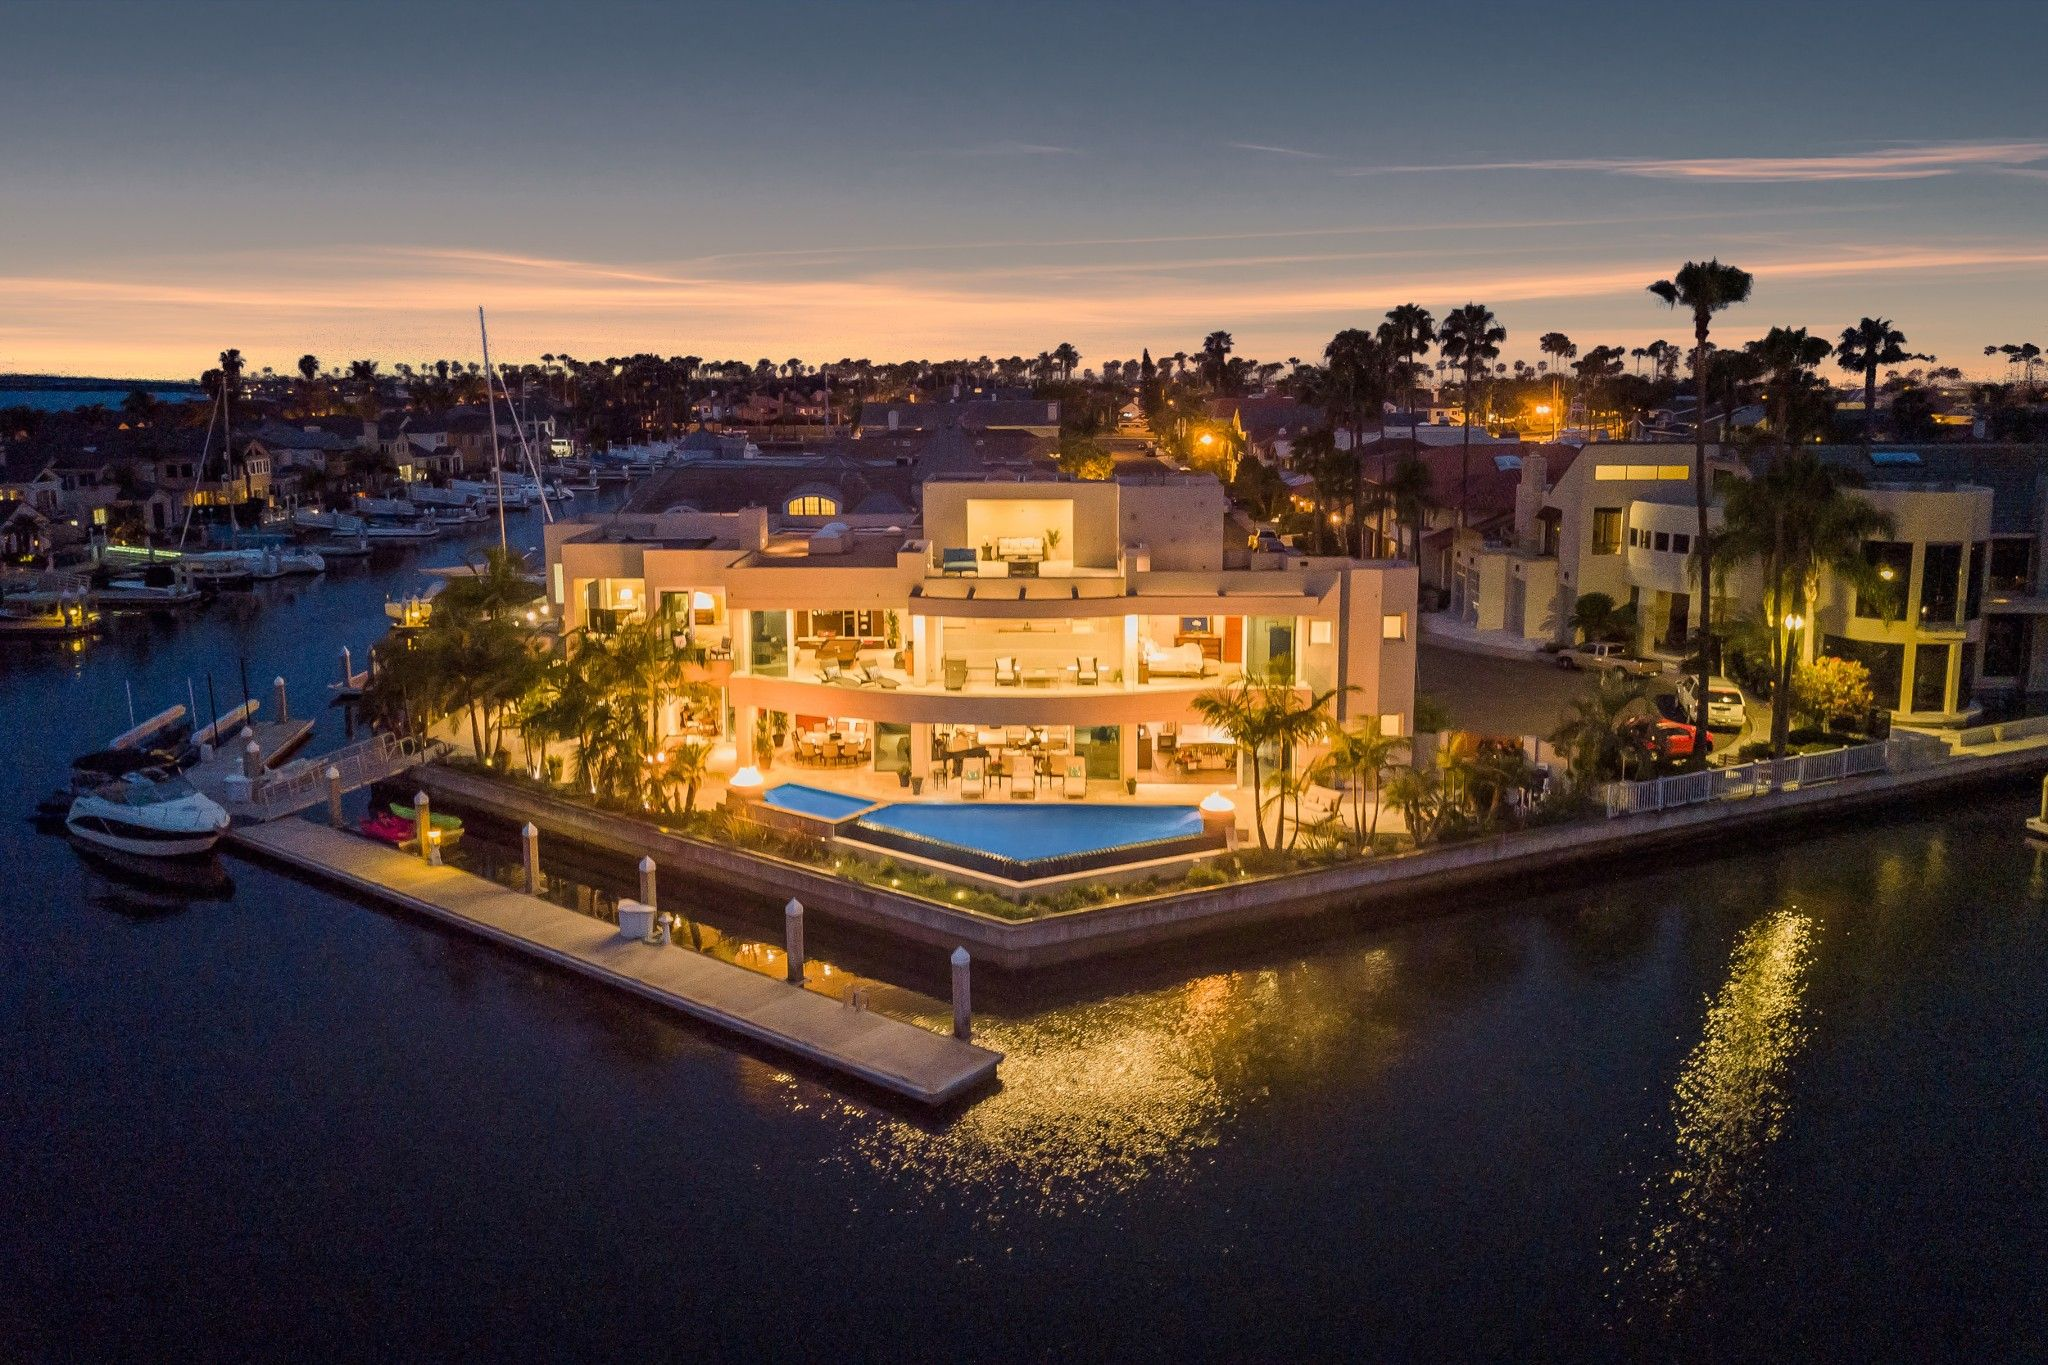 Main Photo: House for sale (9,169)  : 6 bedrooms : 1 Buccaneer Way in Coronado